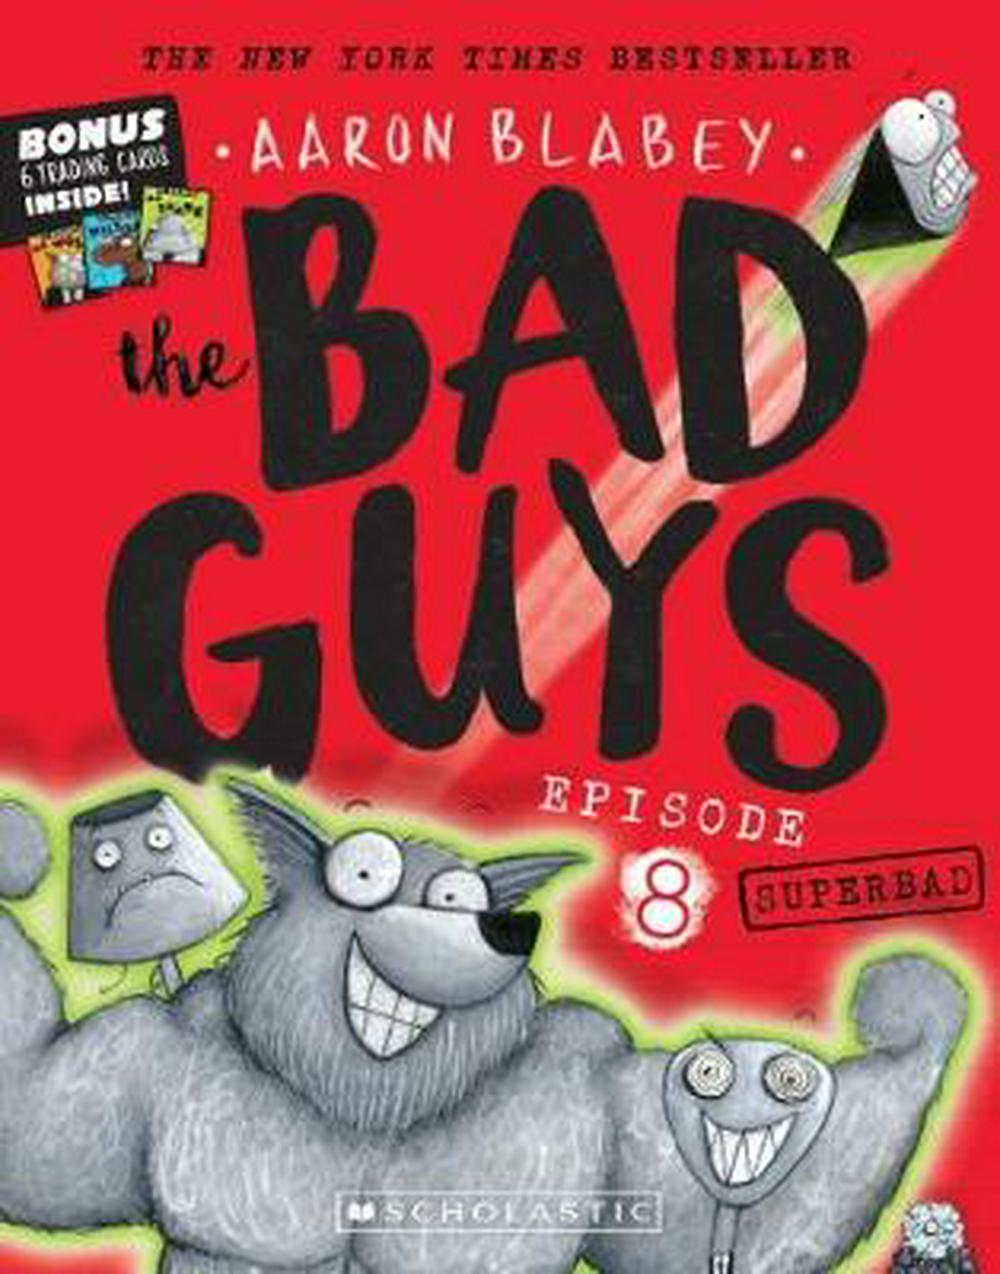 The Bad Guys Episode 8Superbad plus Trading Cards by Aaron Blabey, ISBN: 9781760279509